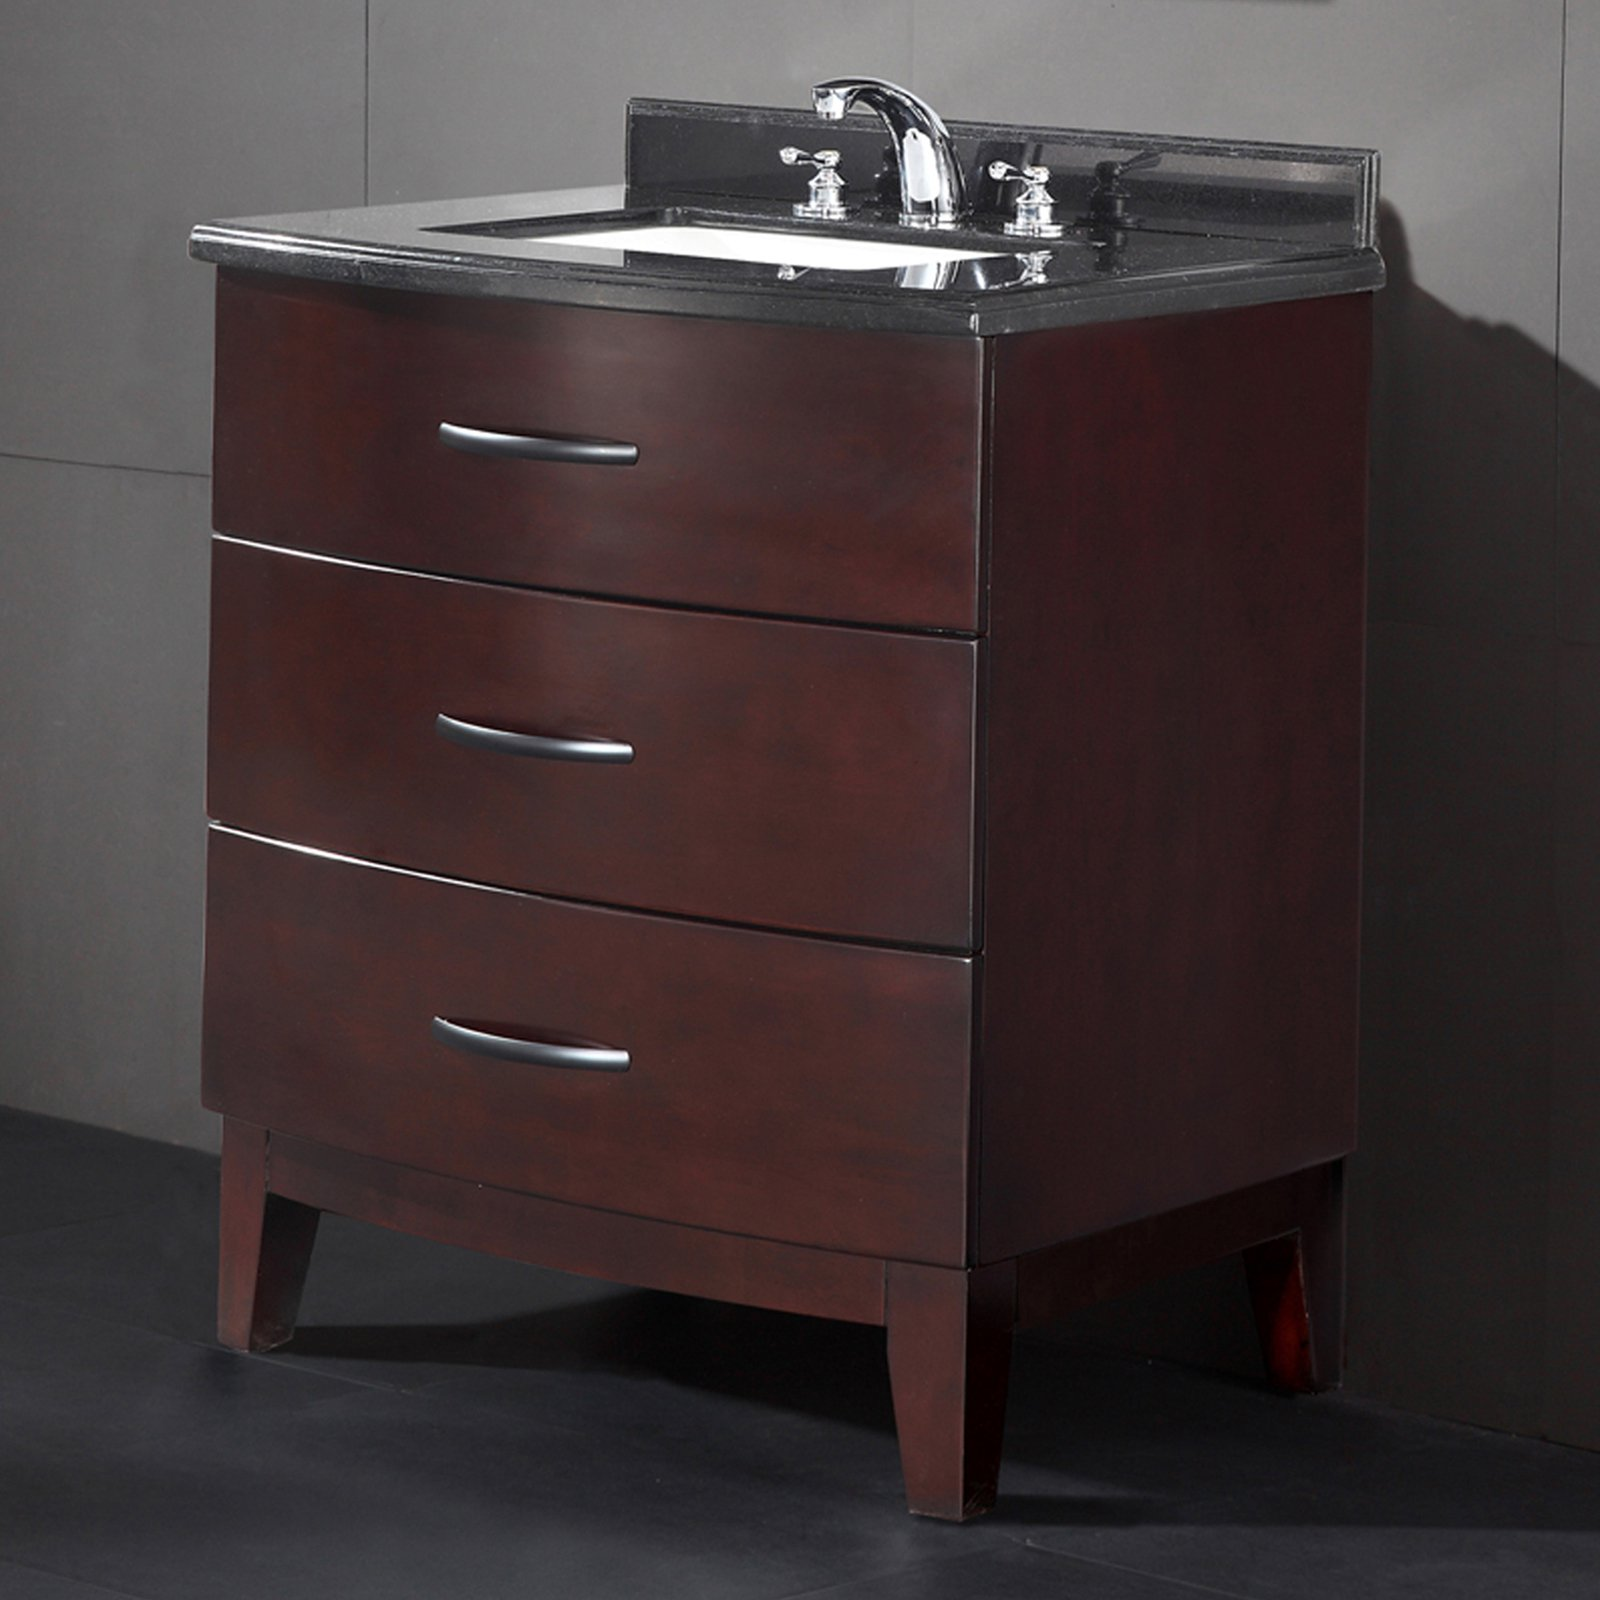 Ove Decors Tobo 30-in. Single Bathroom Vanity - Walmart